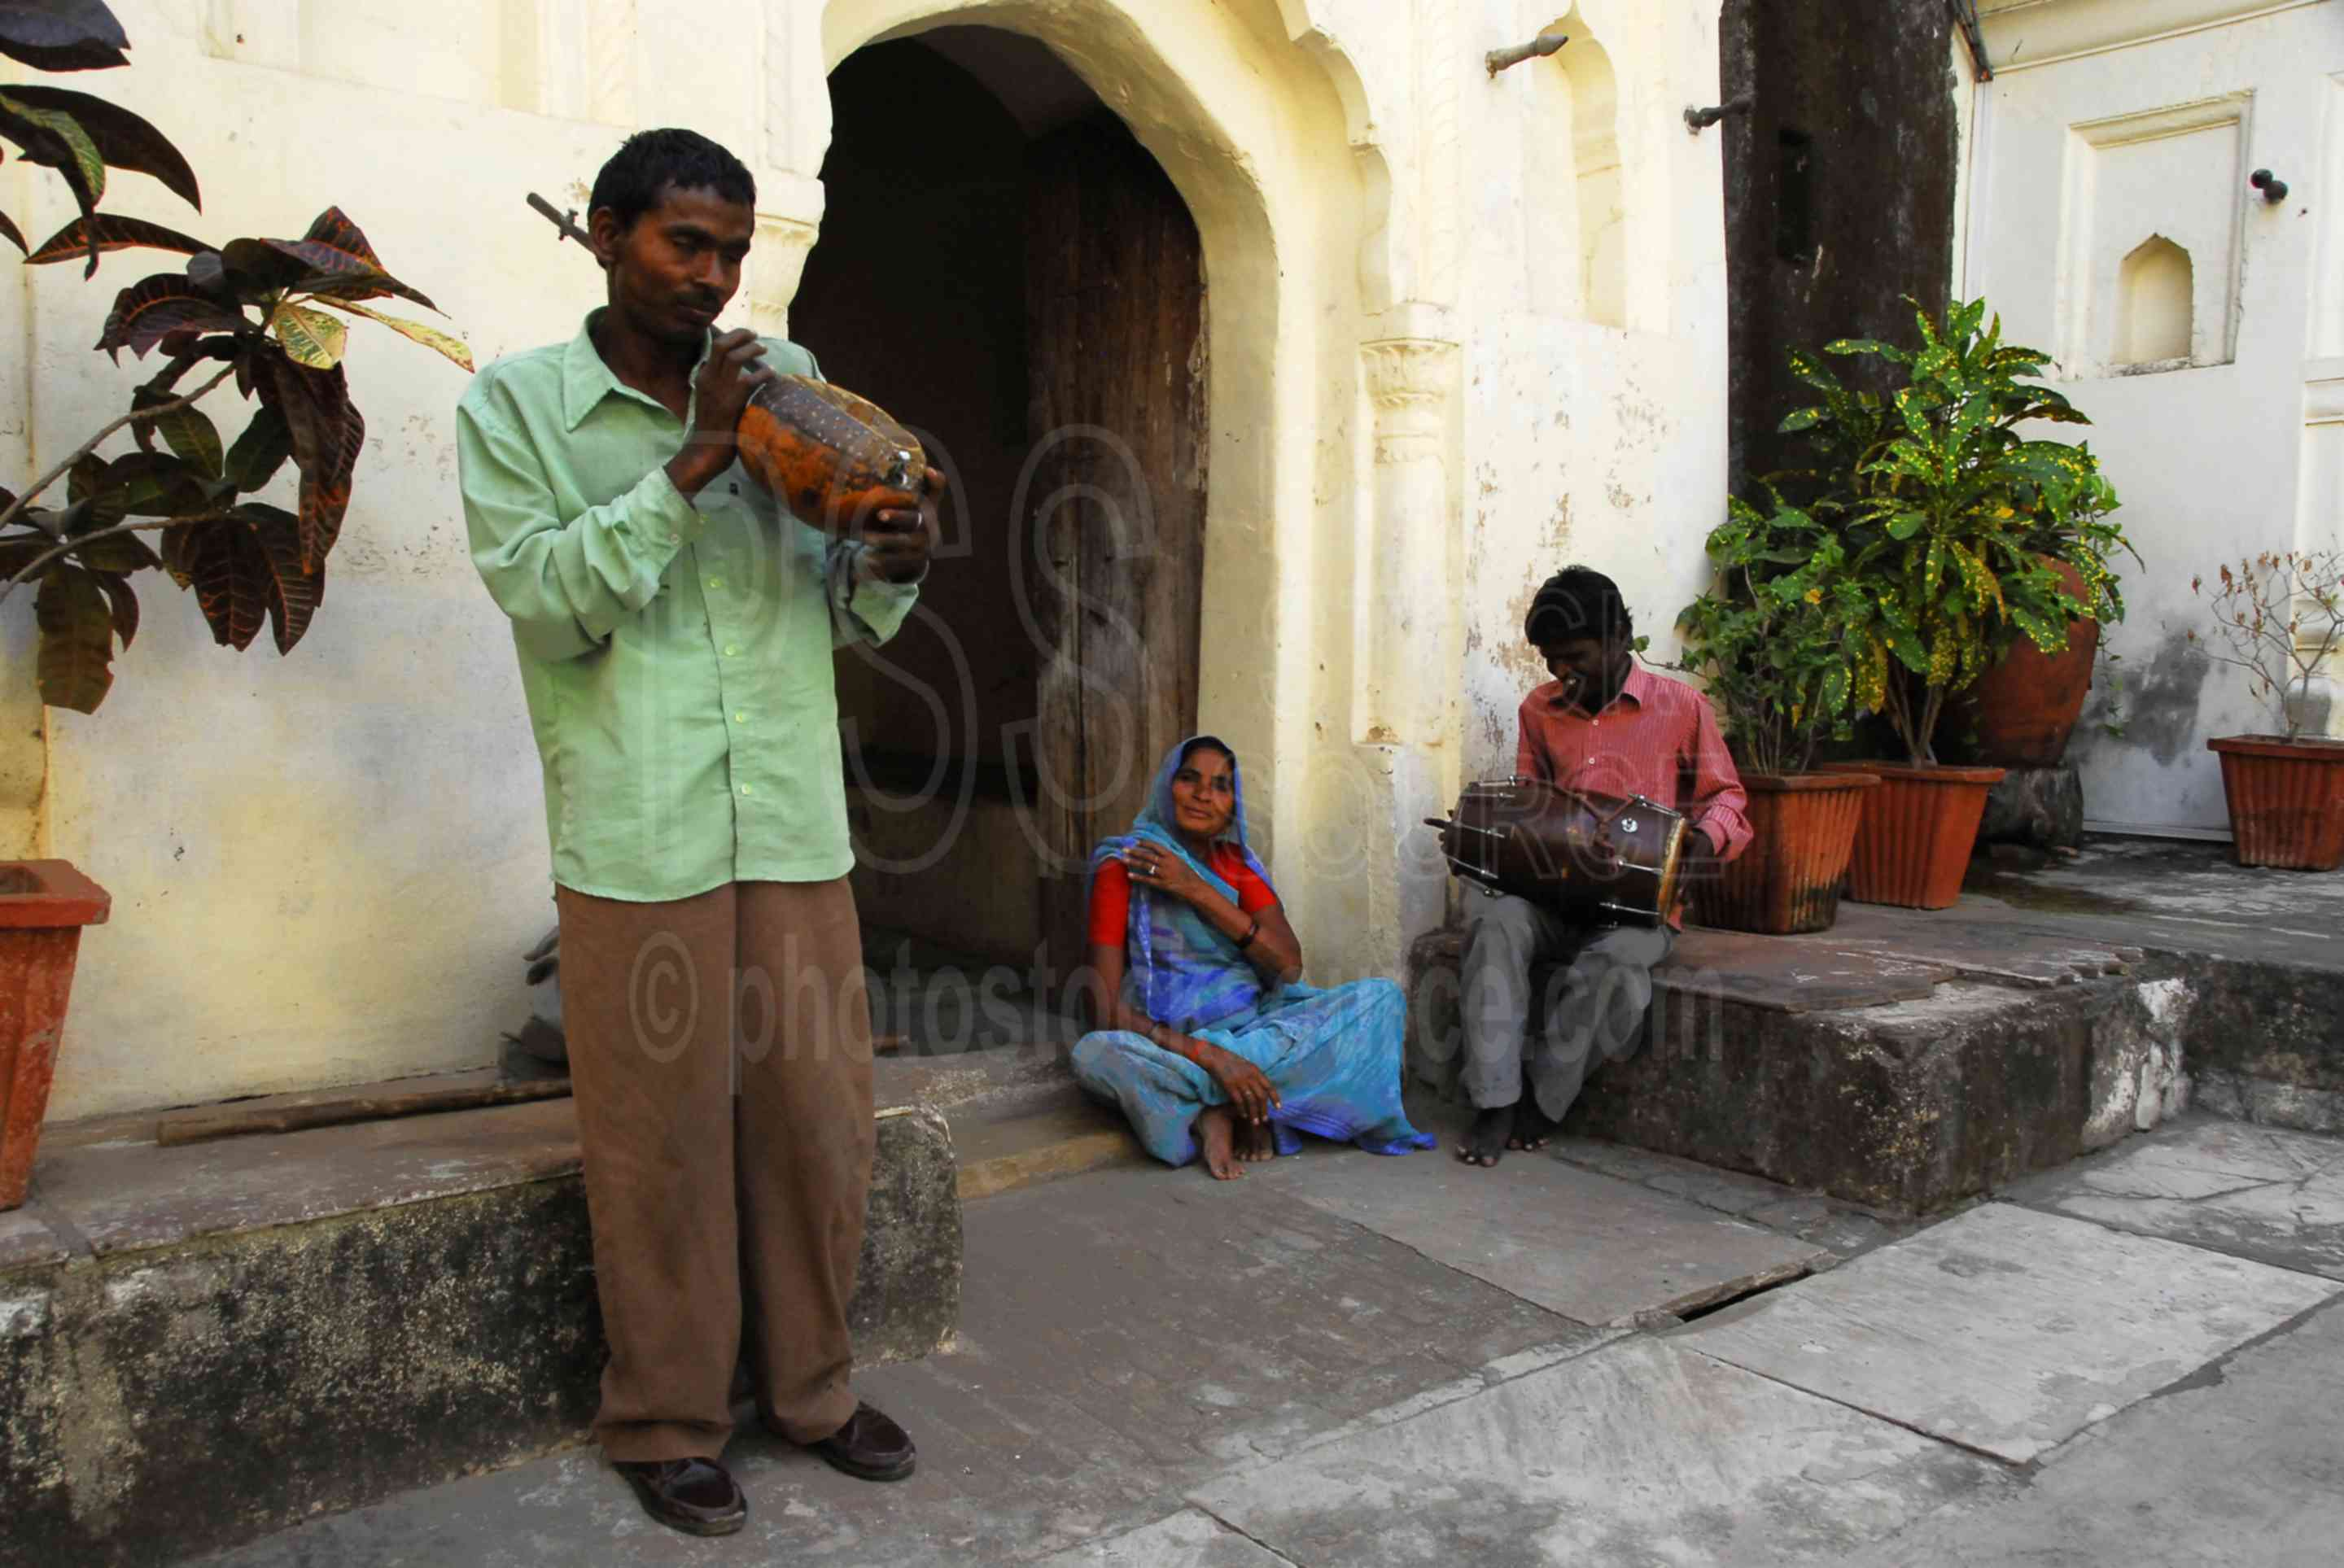 Musicians in the Courtyard,man,woman,music,instruments,courtyard